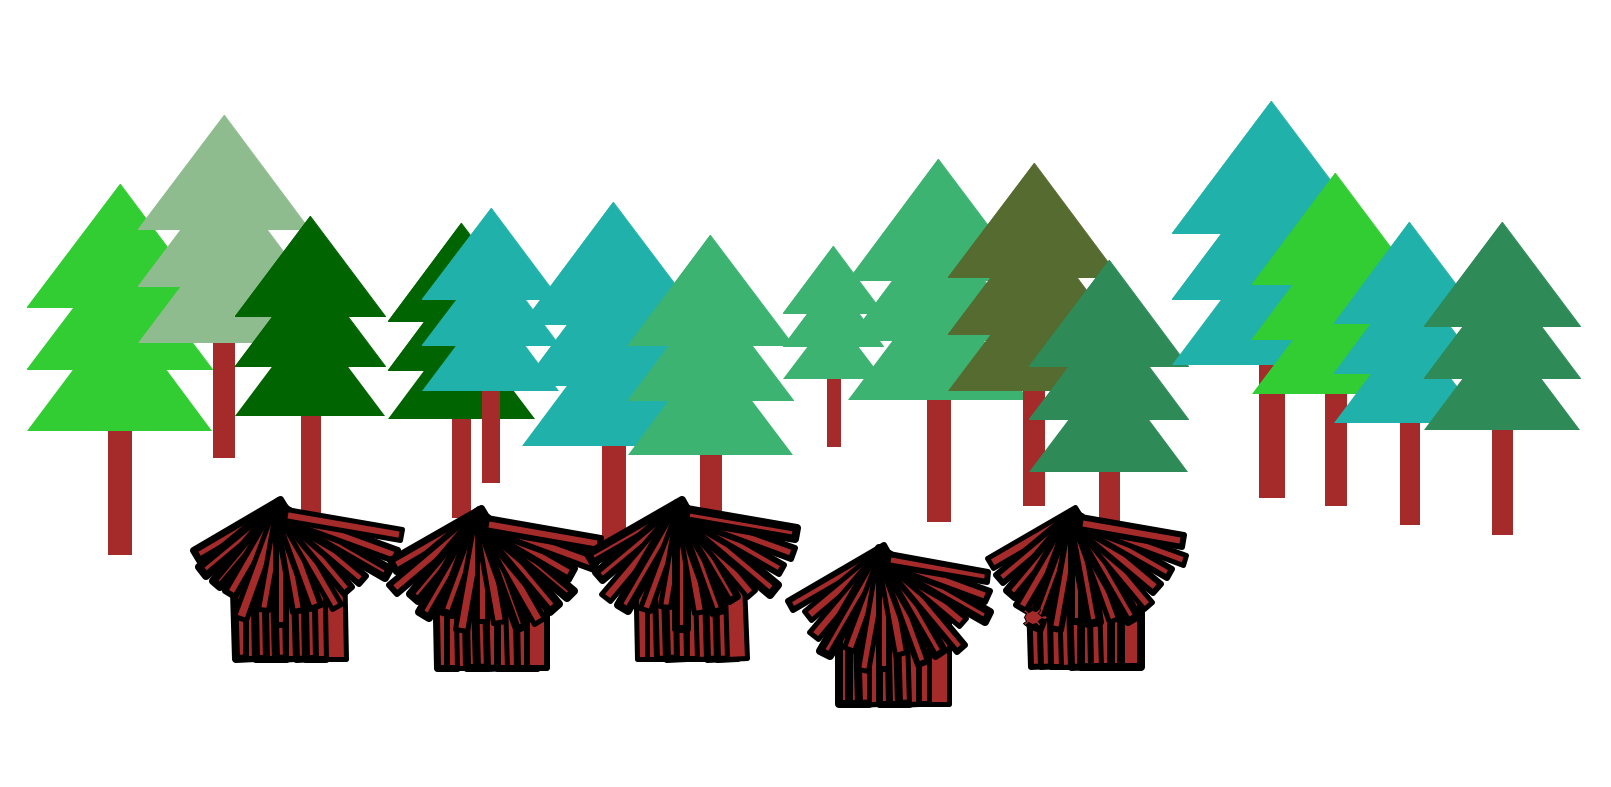 To create this scene you will implement additional functions to draw a tree a hut a forest and a village